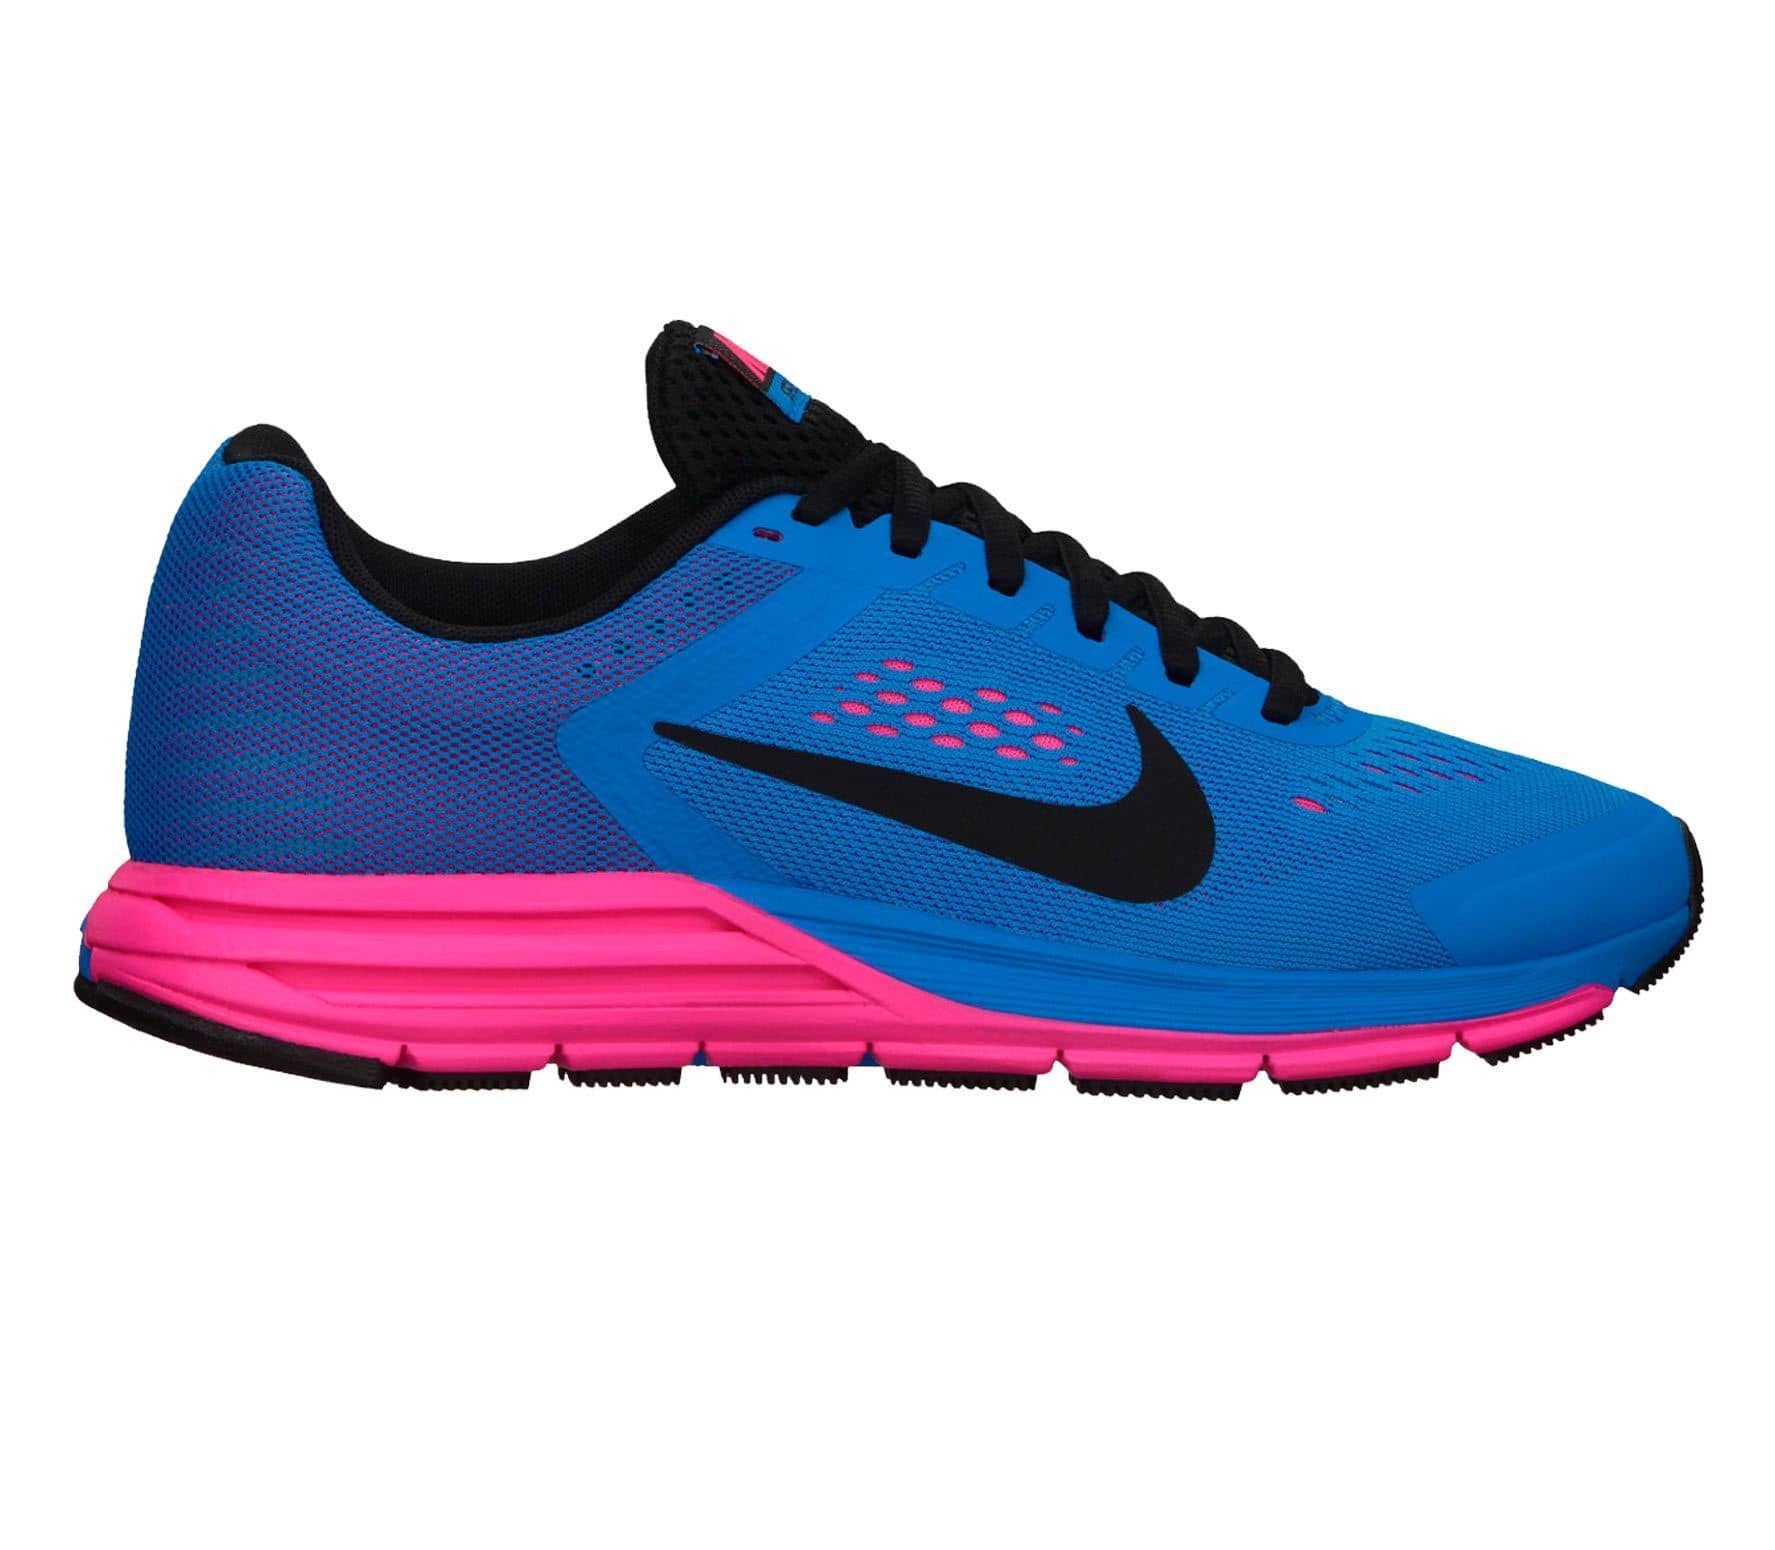 info for 54192 0a315 Nike - Zoom Structure+ 17 women s running shoes (blue pink)